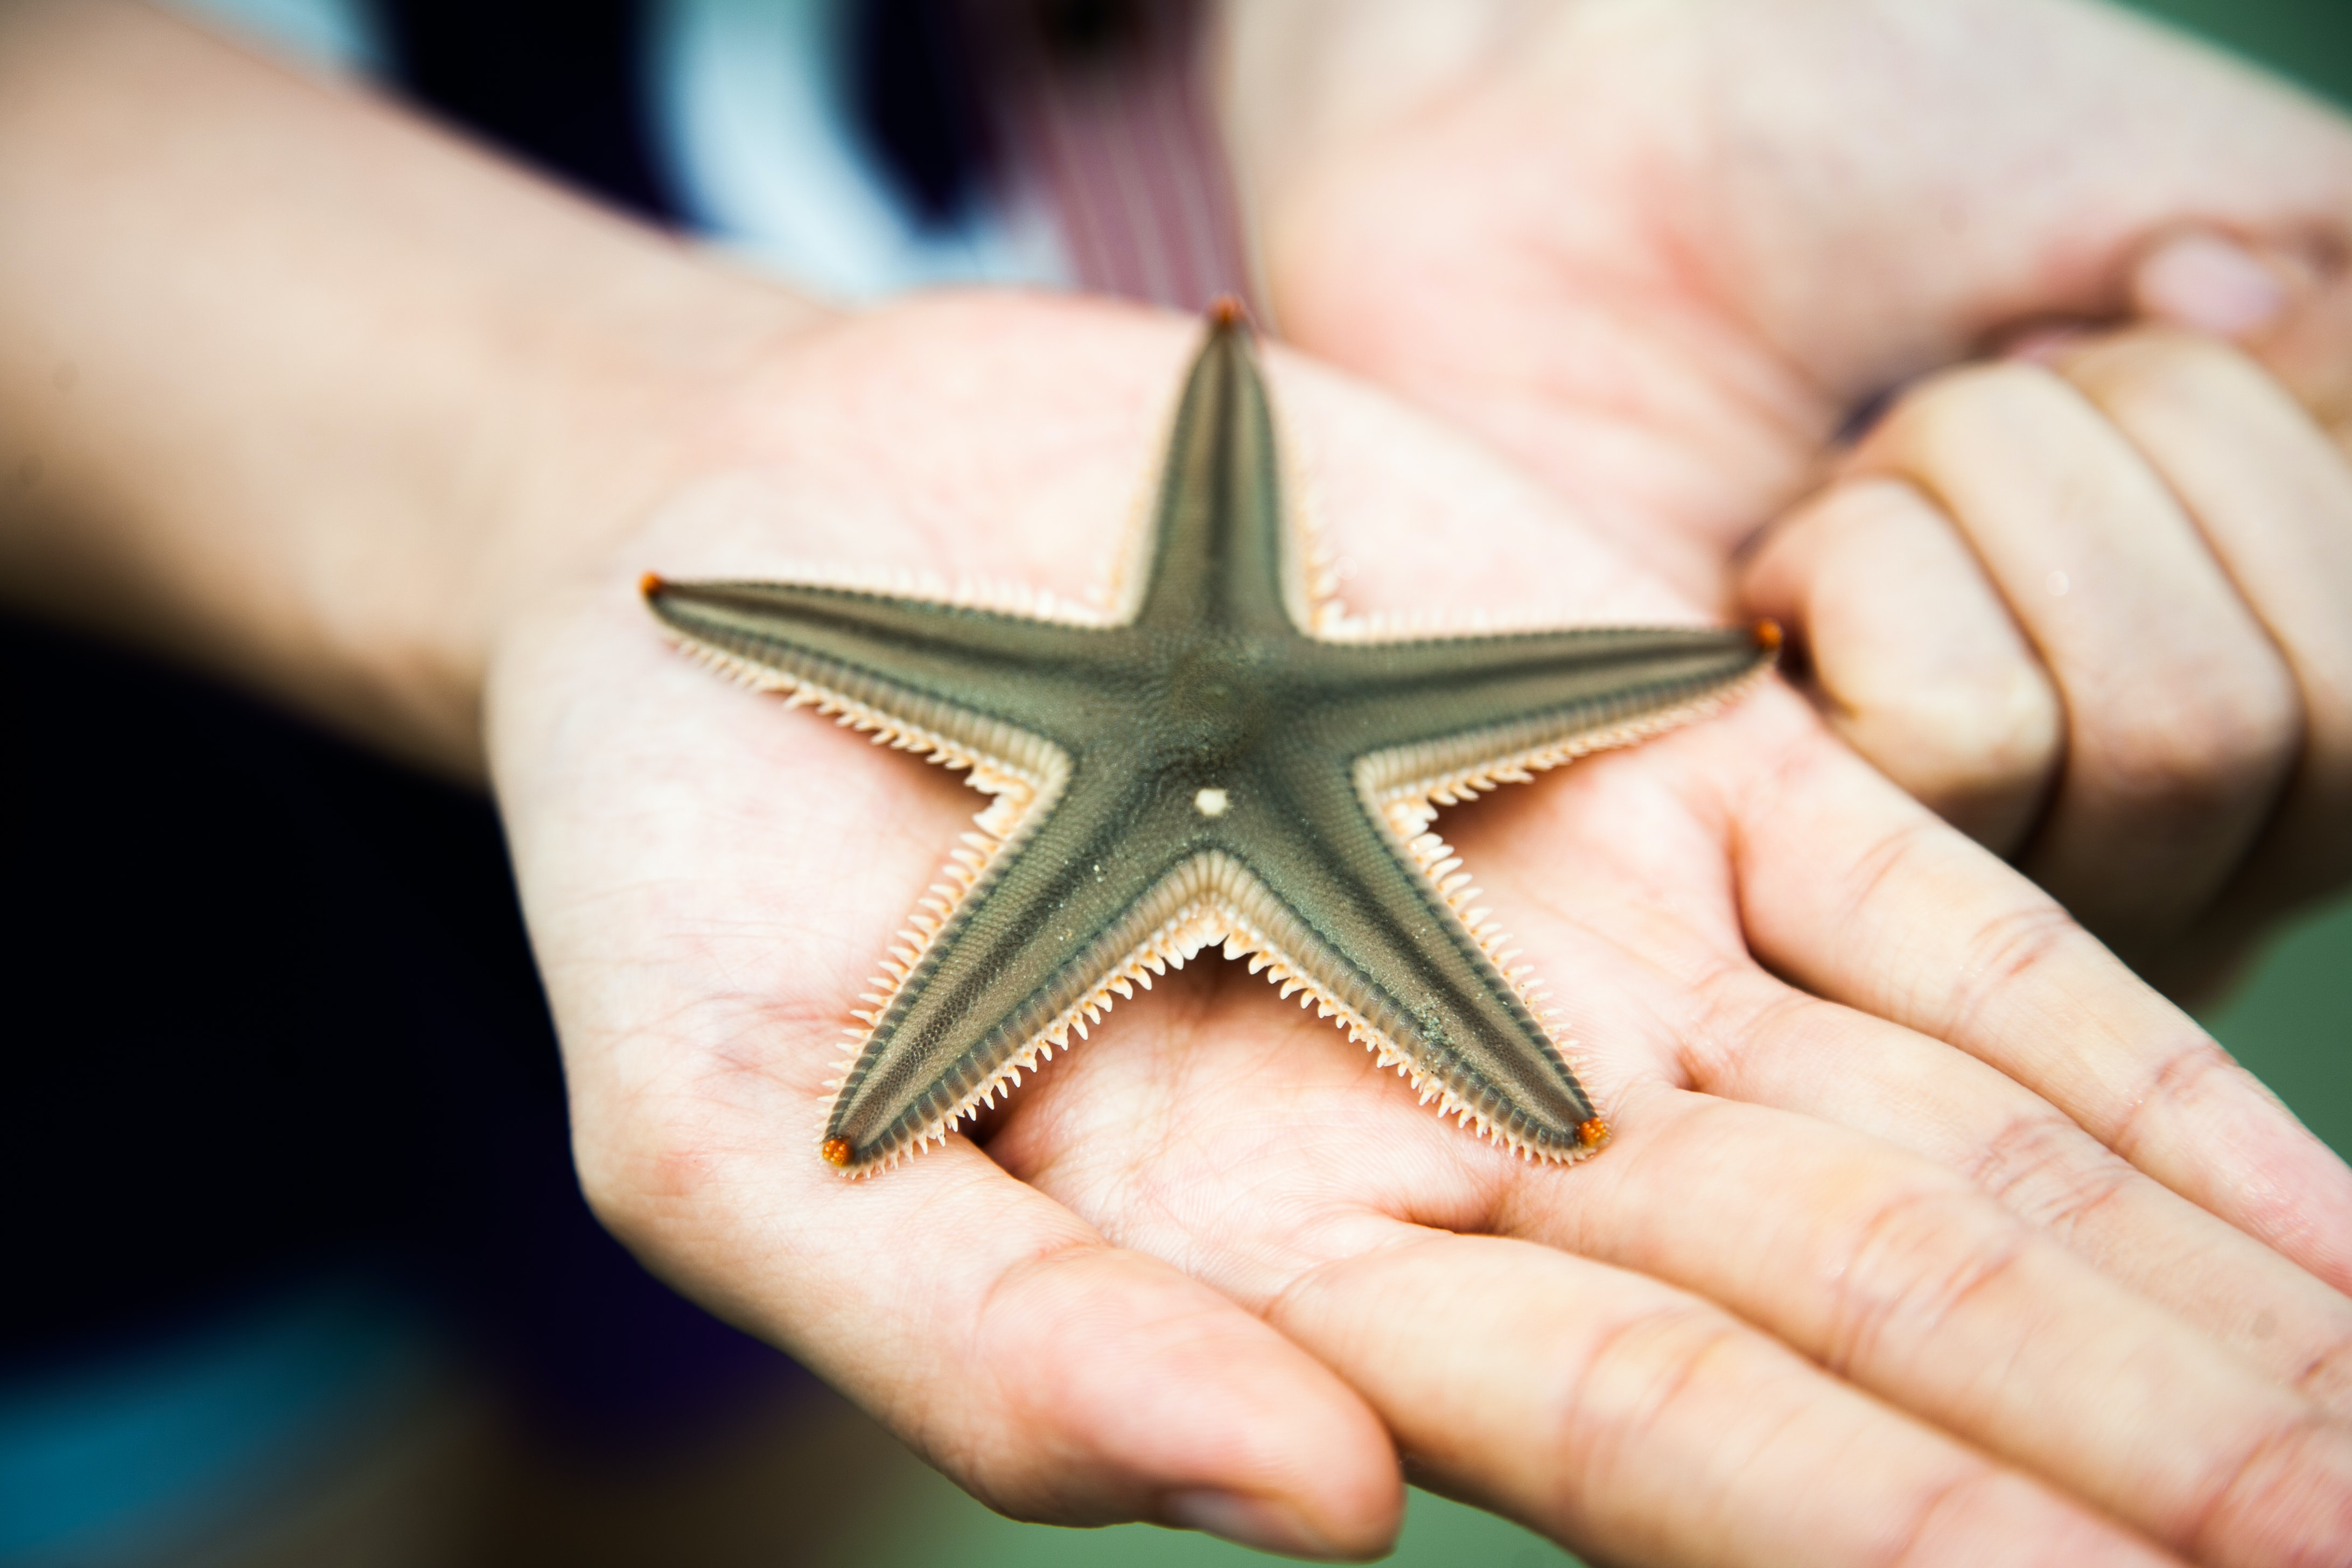 A starfish on a person's hand